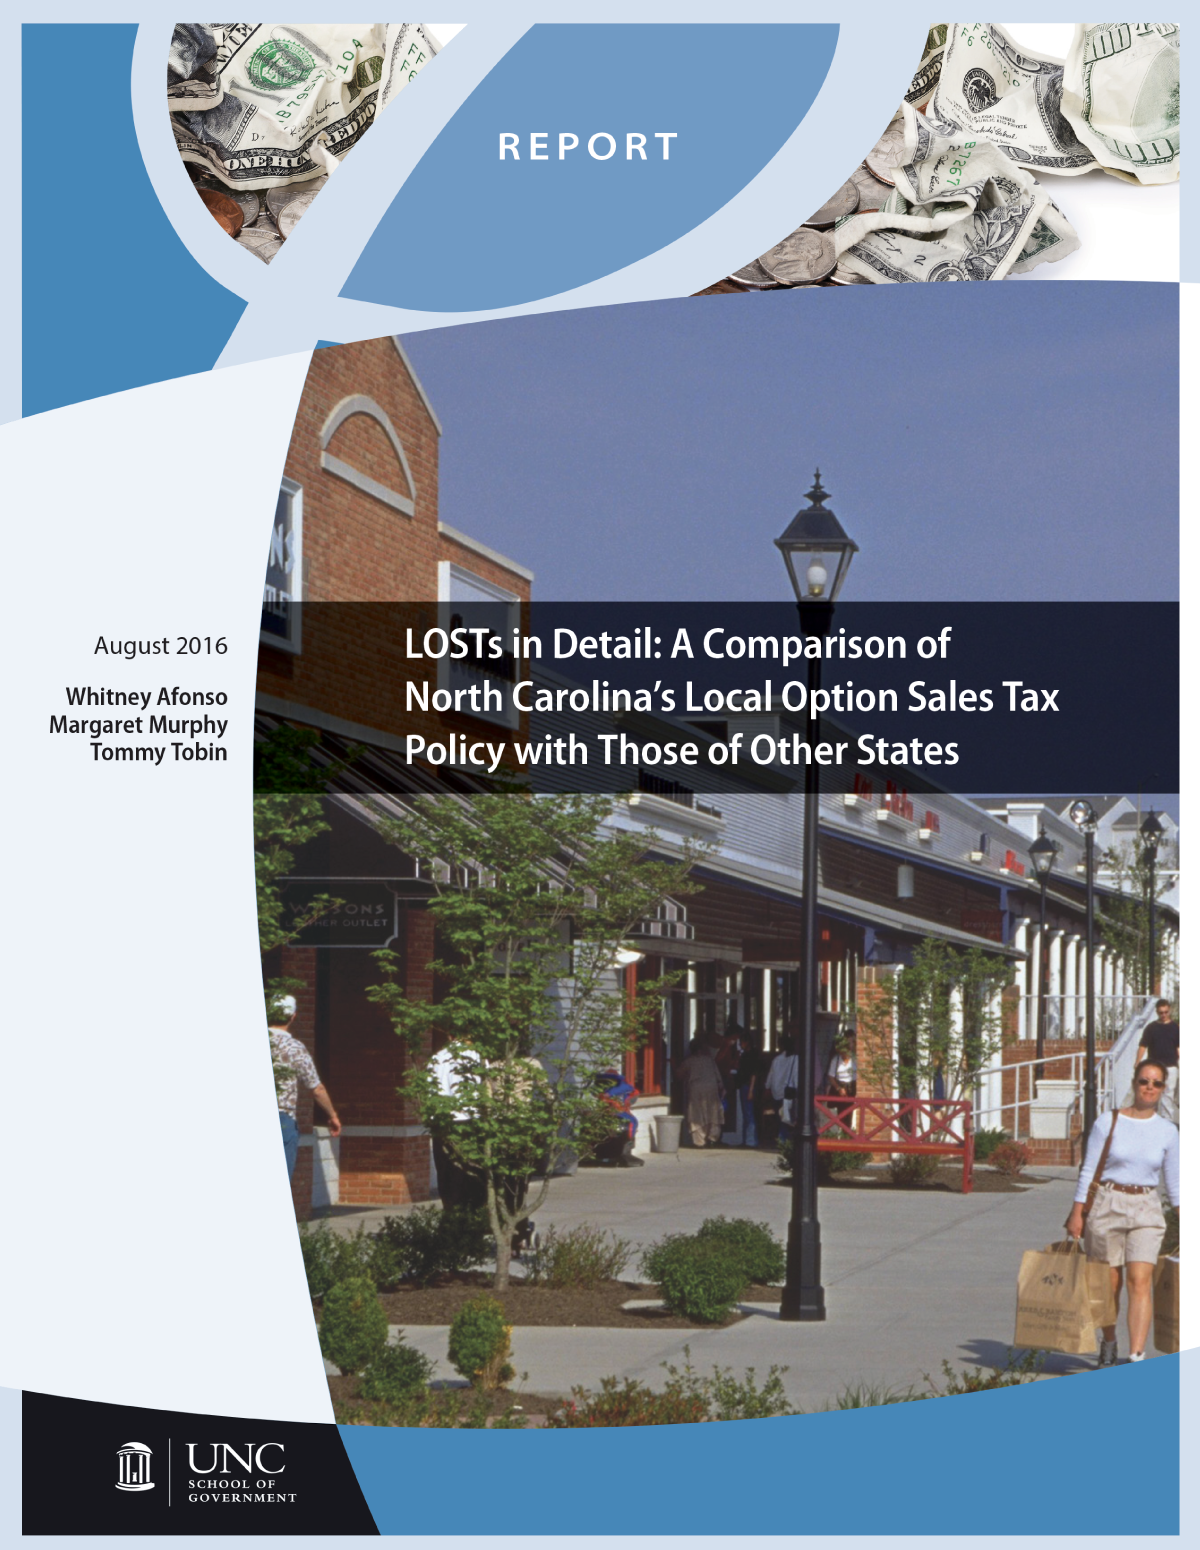 LOSTs in Detail: A Comparison of North Carolina's Local Option Sales Tax Policy with Those of Other States